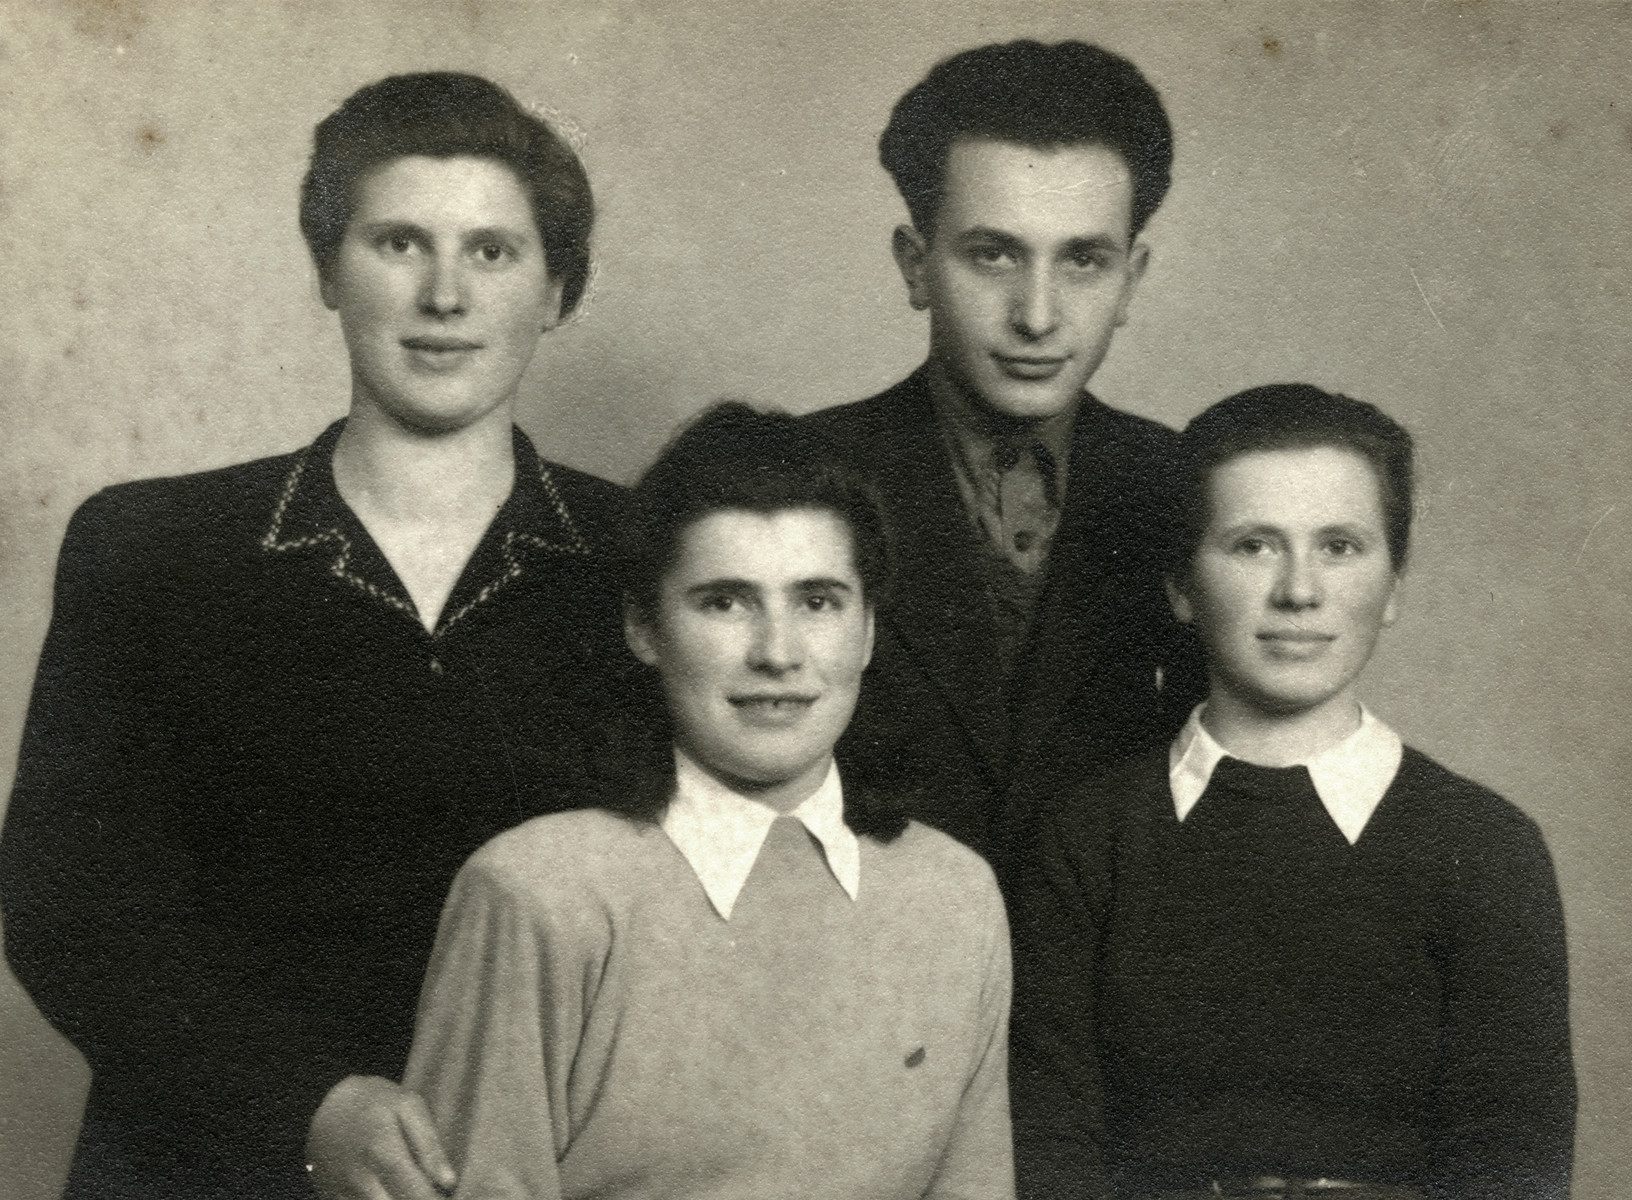 Portrait of four members of the Zionist underground in Budapest.  Pictured in the front row are Rachel and Zippi Schaechter.  Pictured in the back row are Esther Schaechter and Efra Agmon.